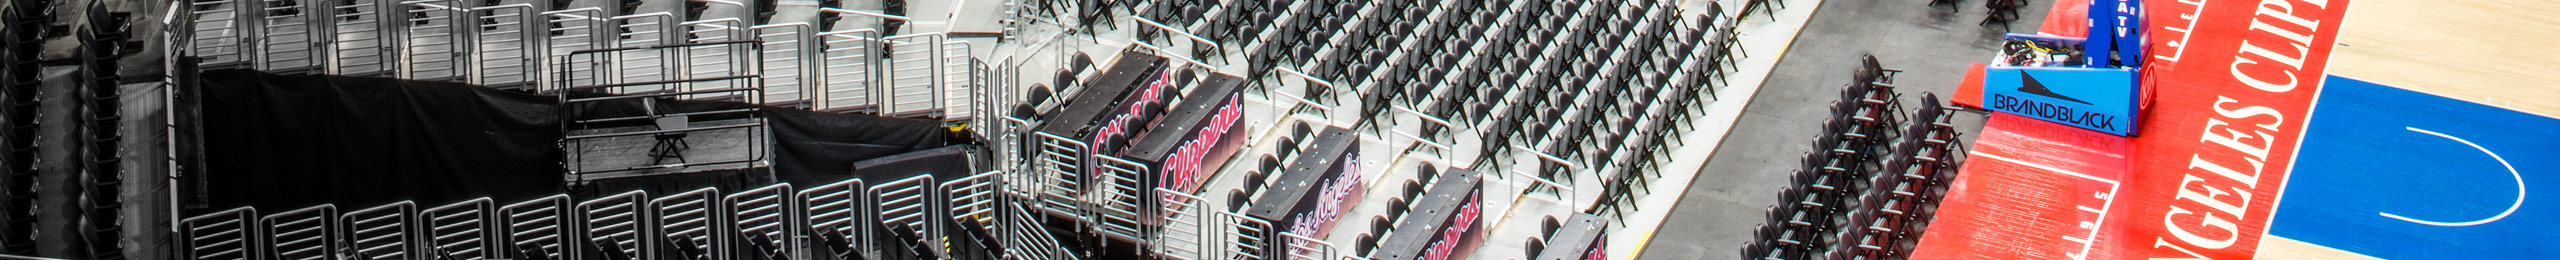 Seating Risers, Event Staging, and Other Custom Solutions For Your Arena or Stadium